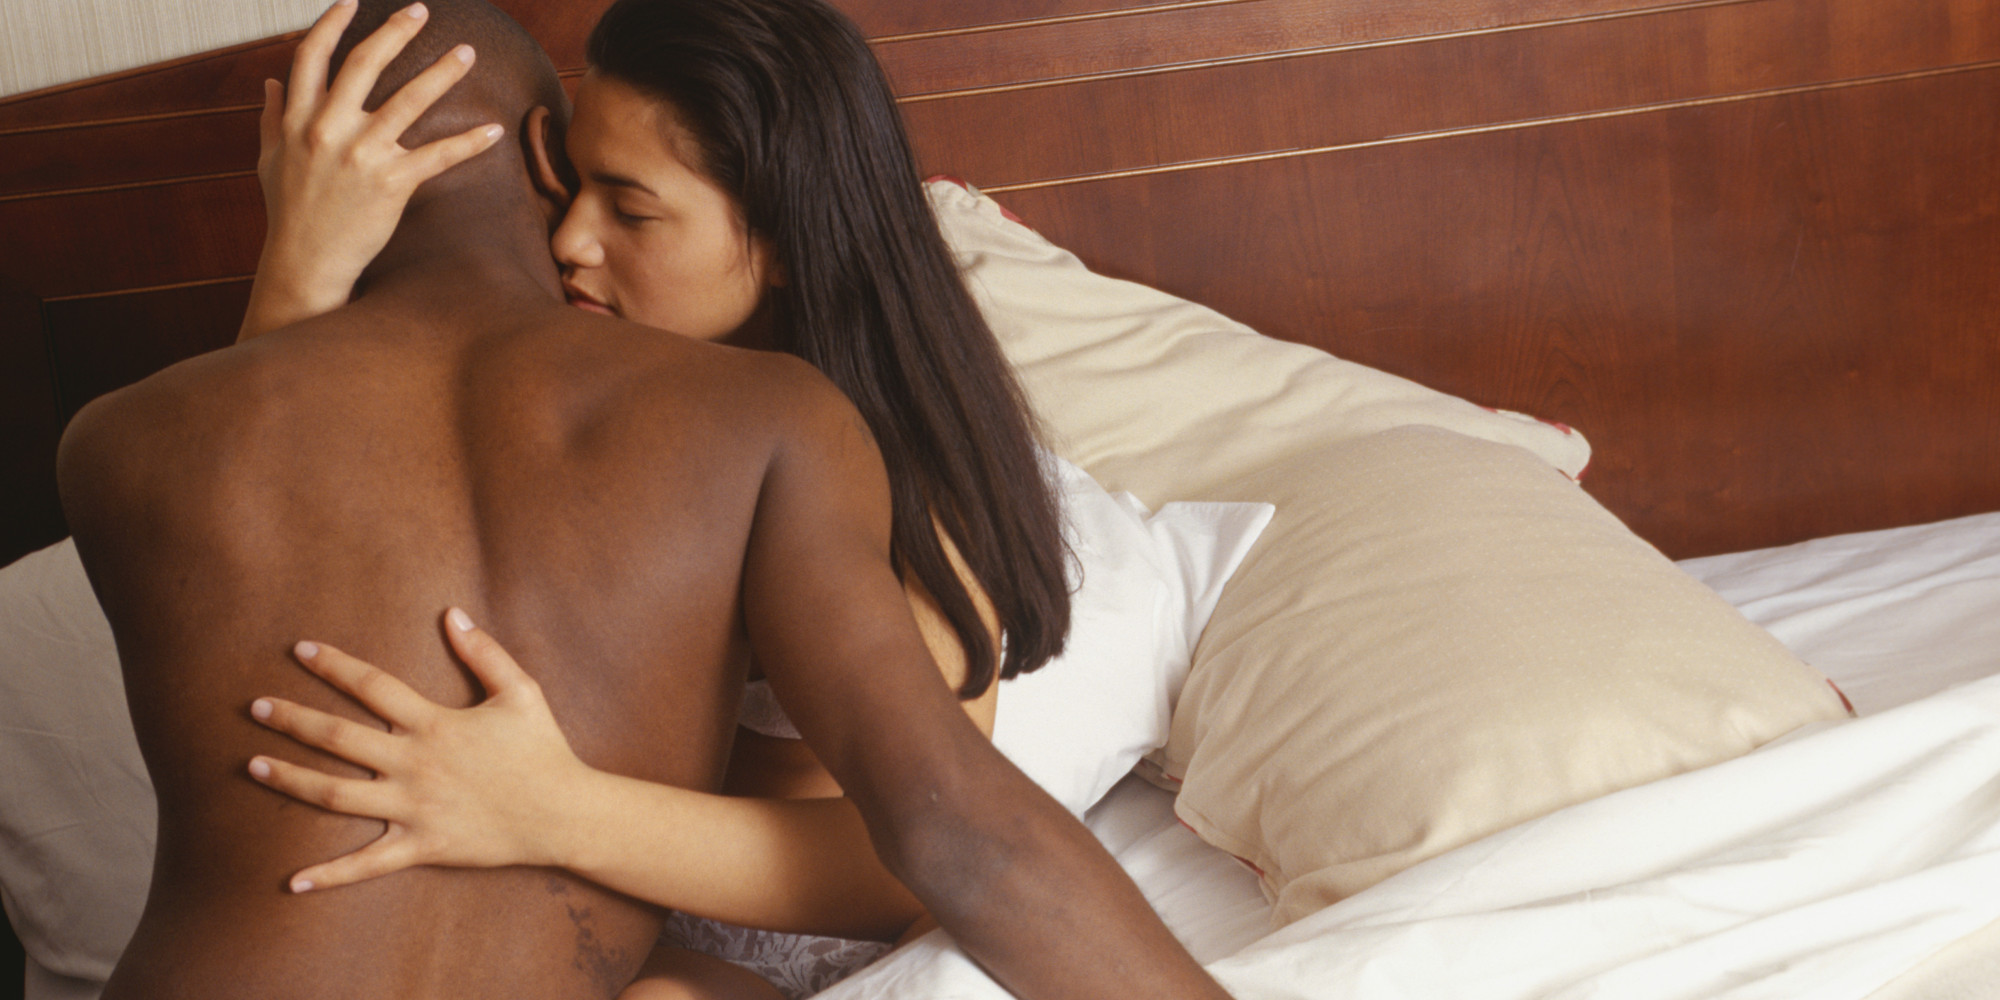 black women having hardcore sex